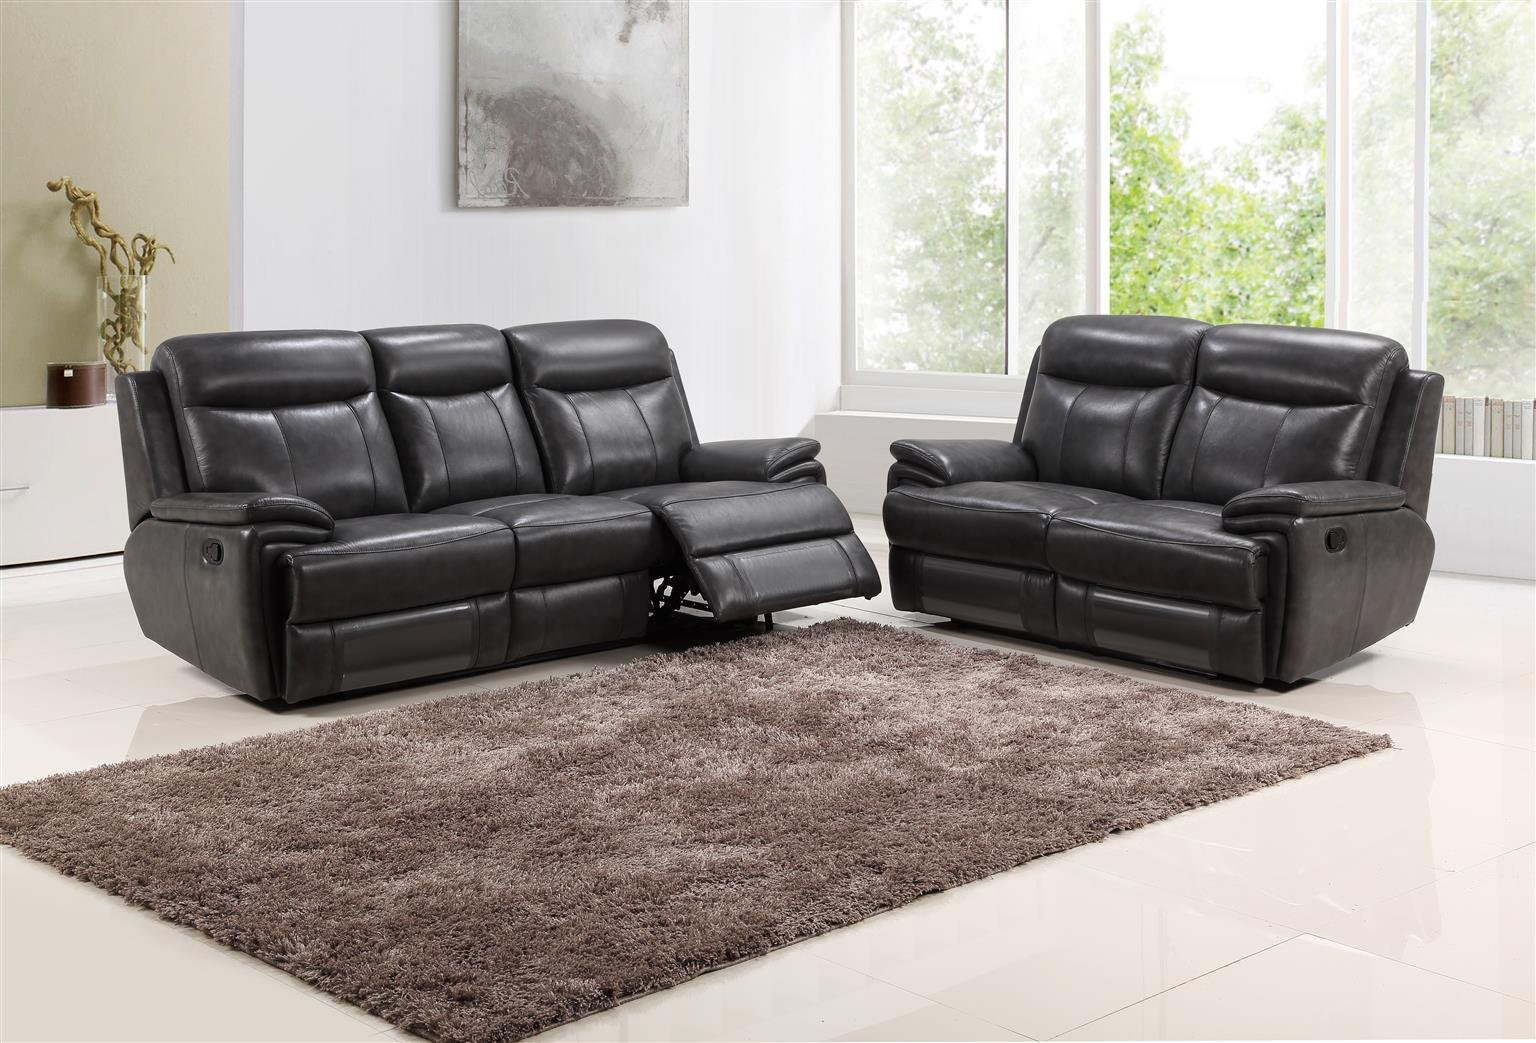 3 PIECE LOUNGE SUITE BRAND NEW ASHANTI LOUNGE SUITE FOR ONLY R 19 999!!!!!!!!!!!!!!!!!